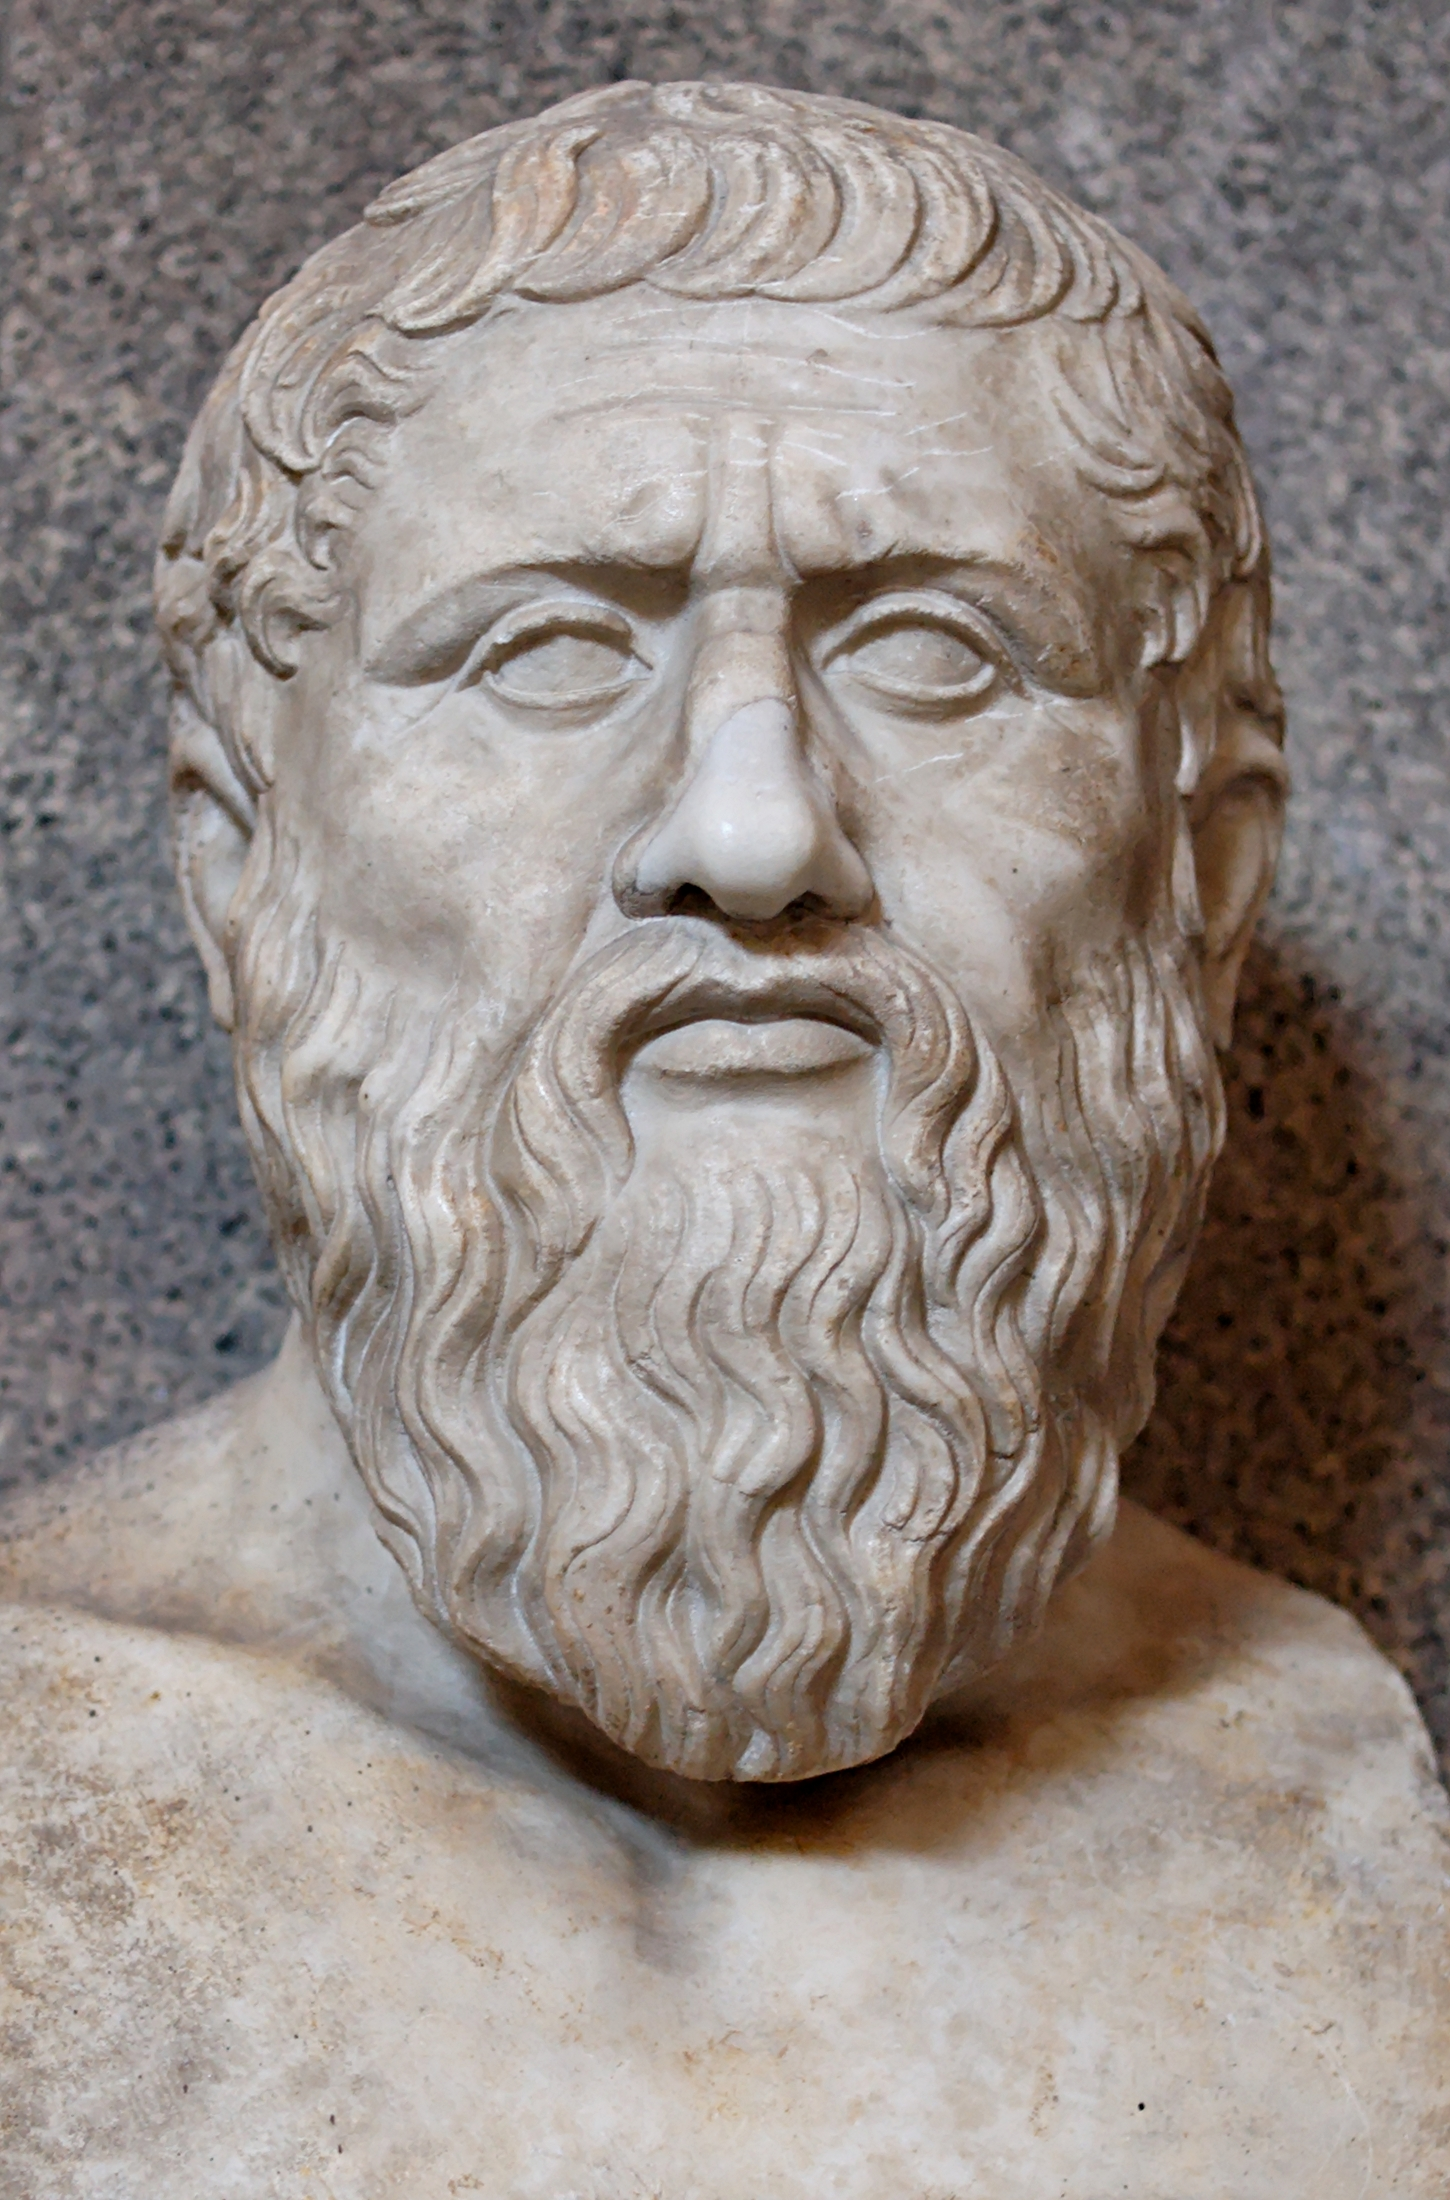 Plato: Political Philosophy